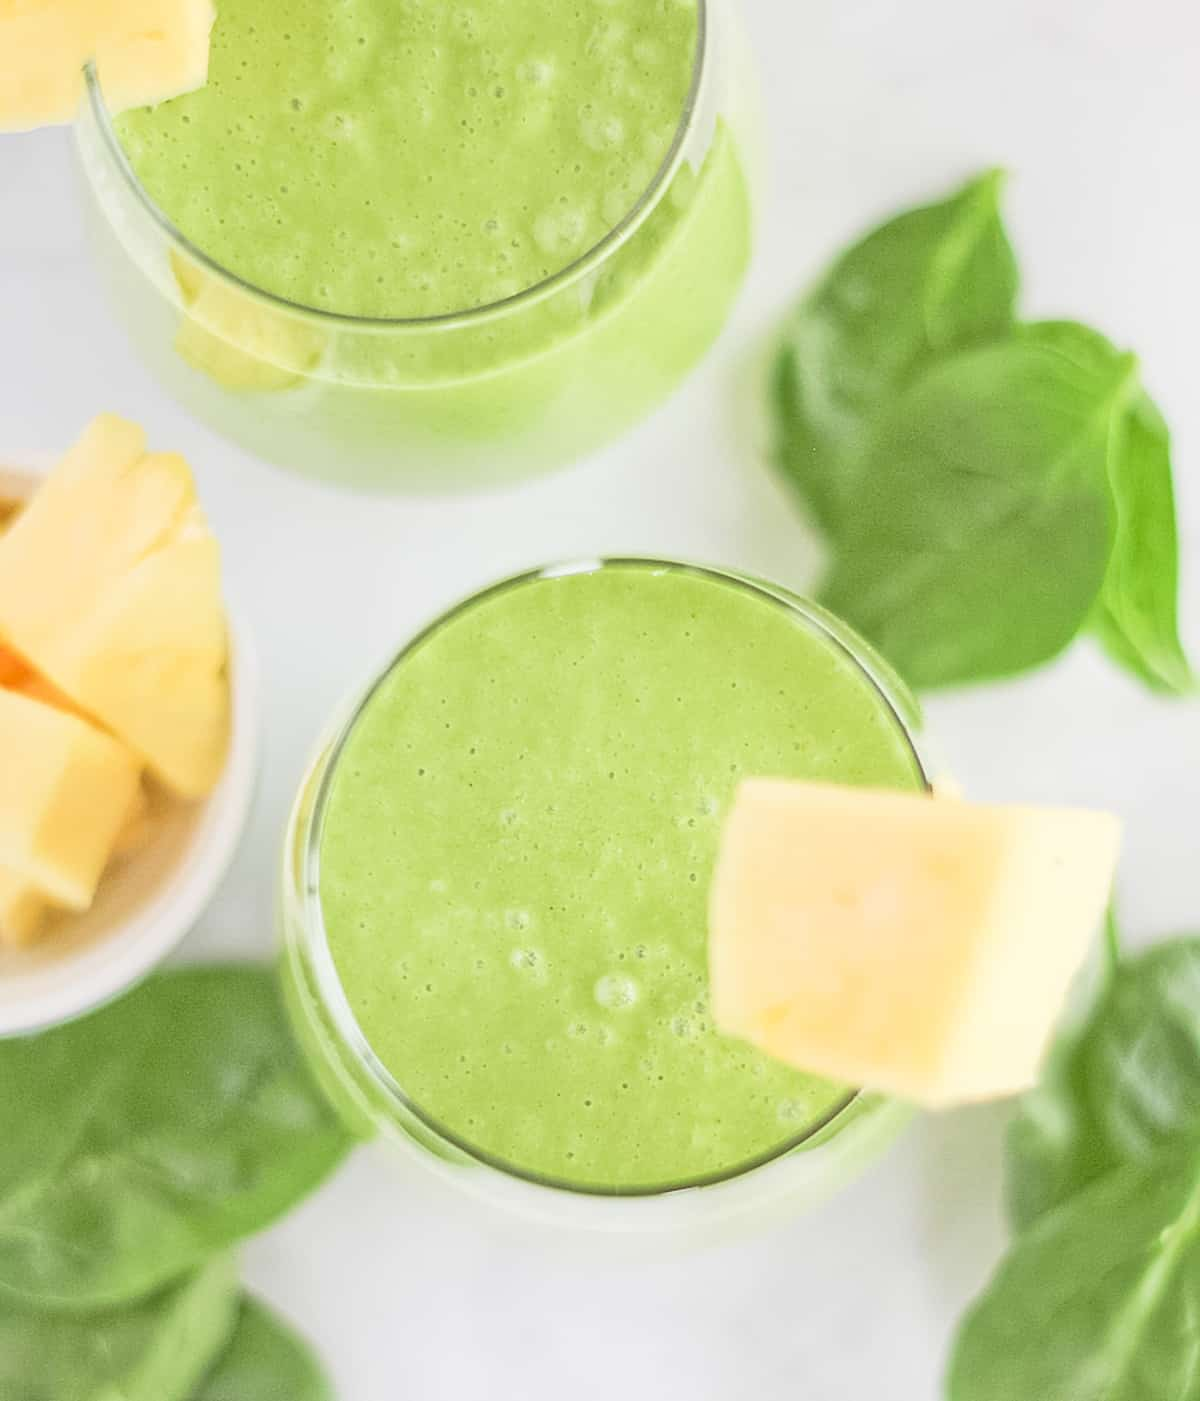 Top view of two glasses filled with pineapple green smoothie surrounded by spinach leaves and chunks of pineapple.